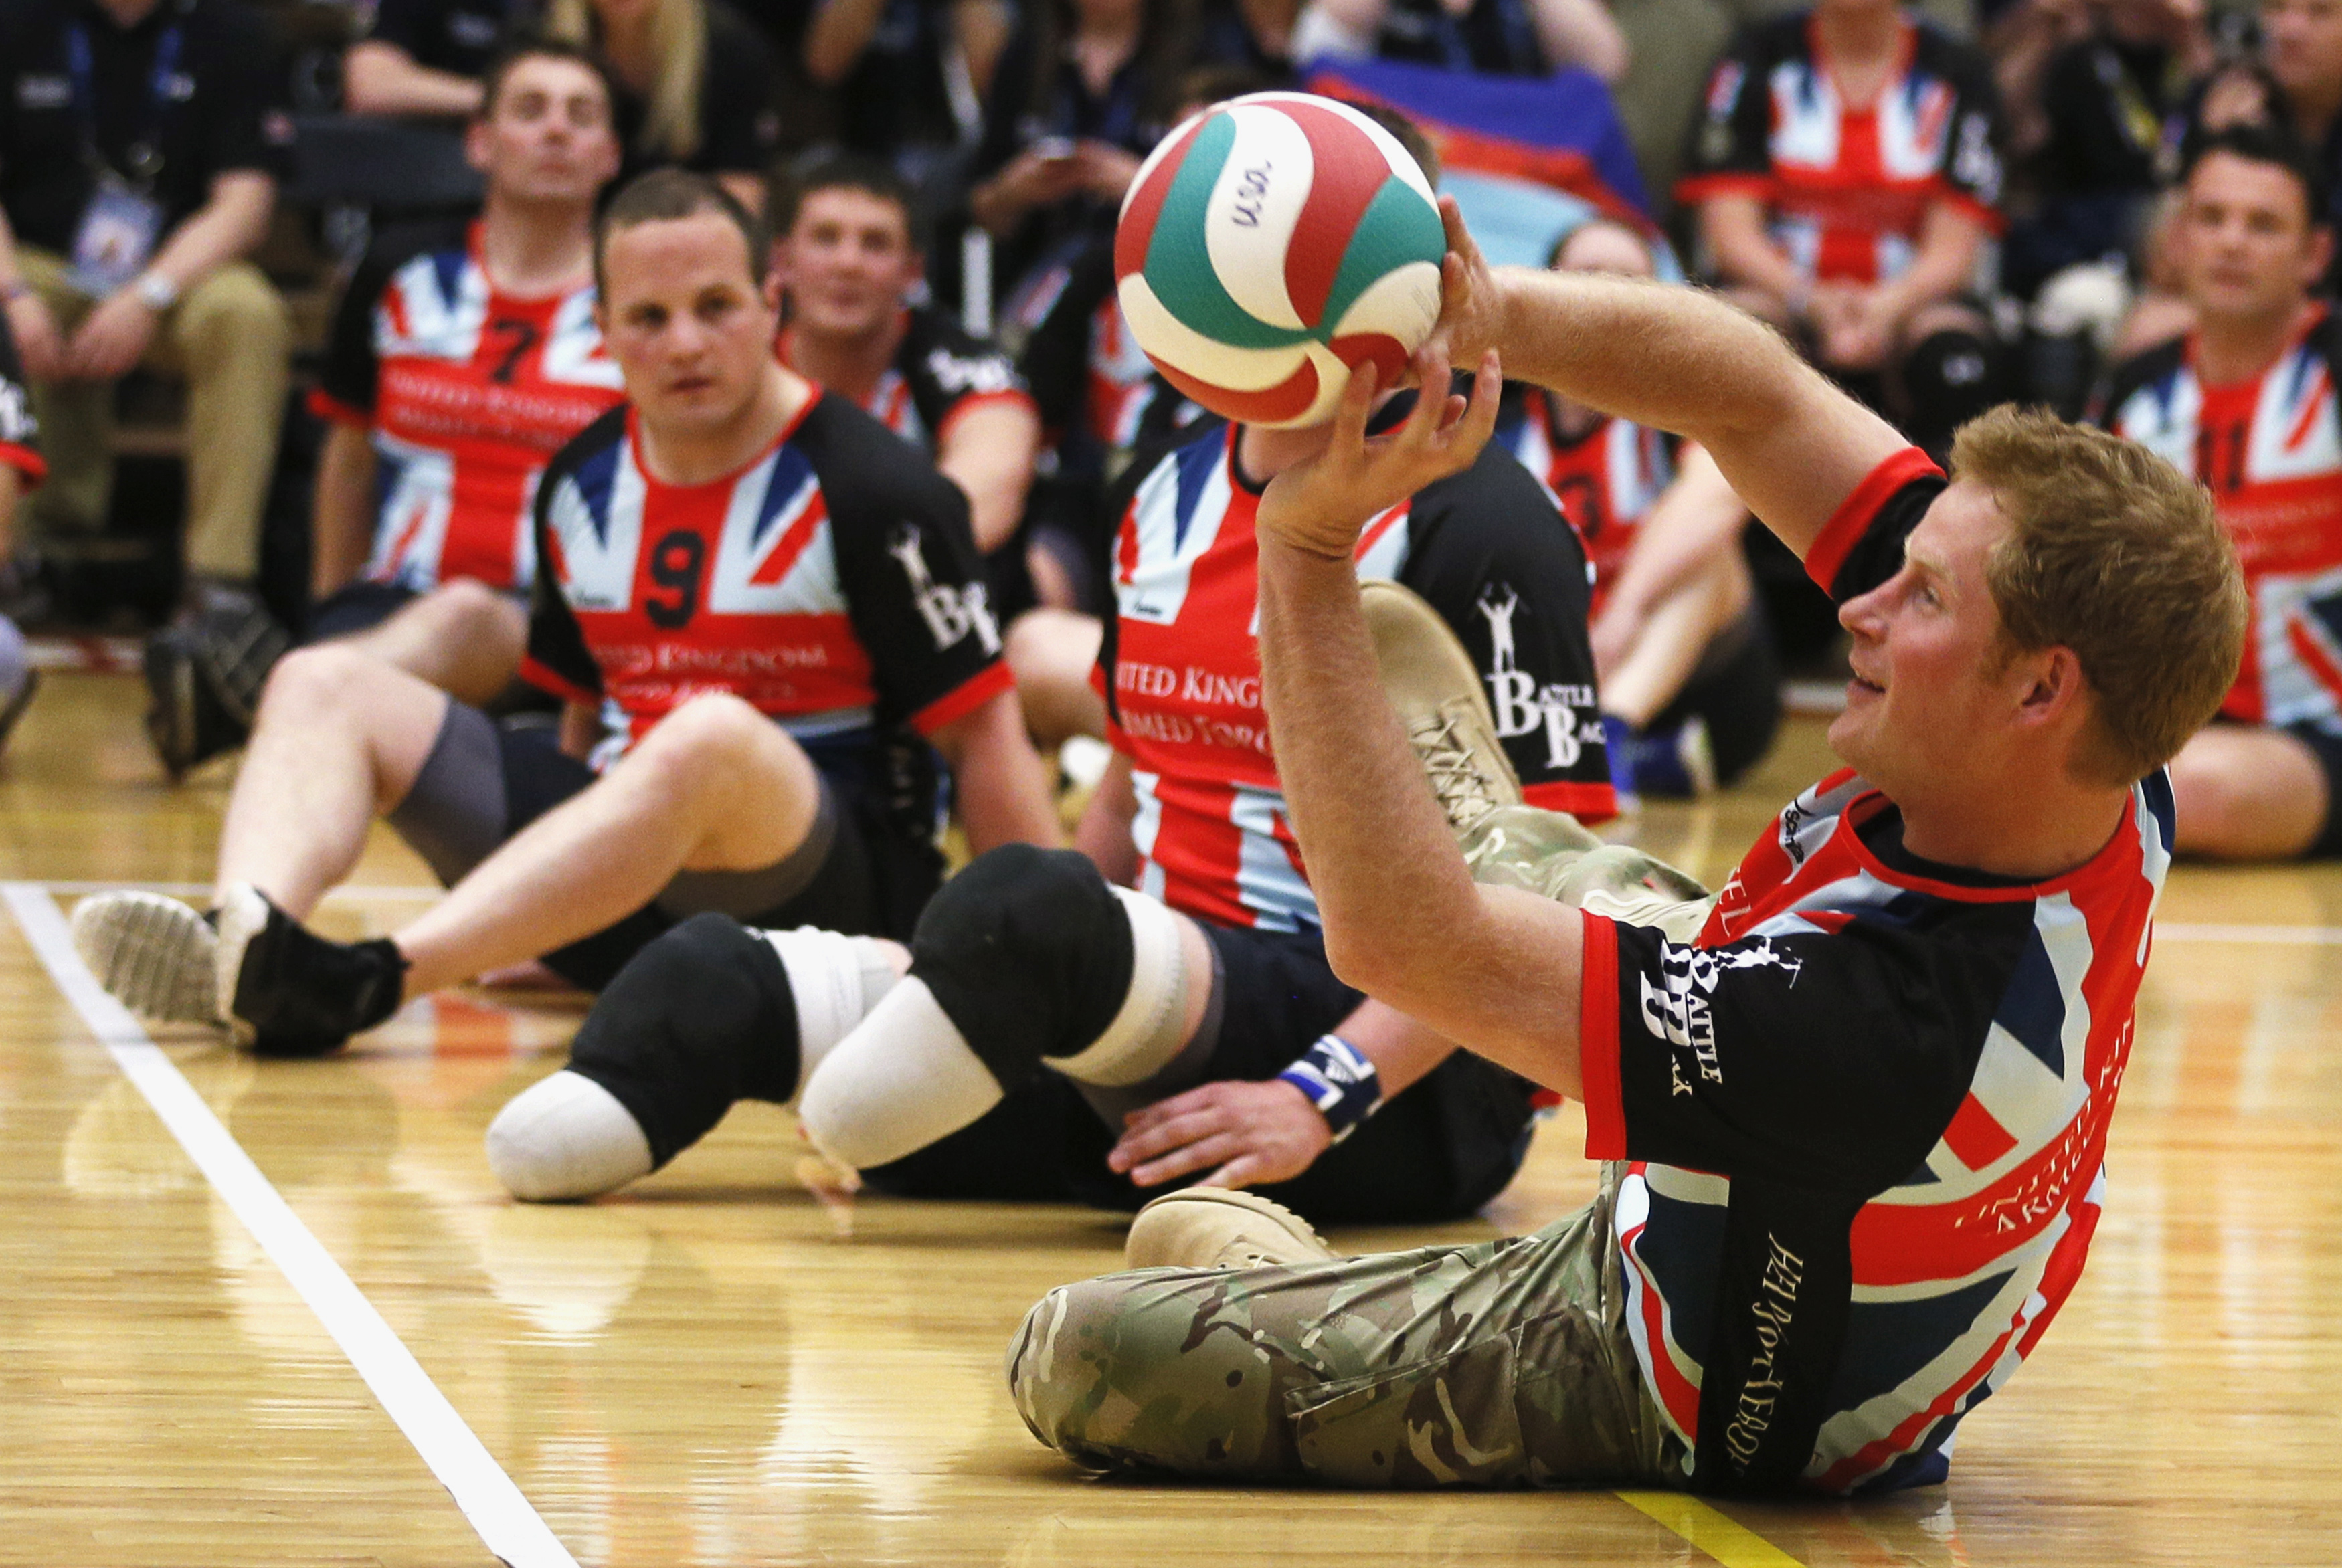 Britain's Prince Harry plays sitting volleyball with members of the British Warrior Games team in a gymnasium, before the opening of the Warrior Games at the U.S. Olympic Training Center in Colorado Springs, Colorado on May 11, 2013.